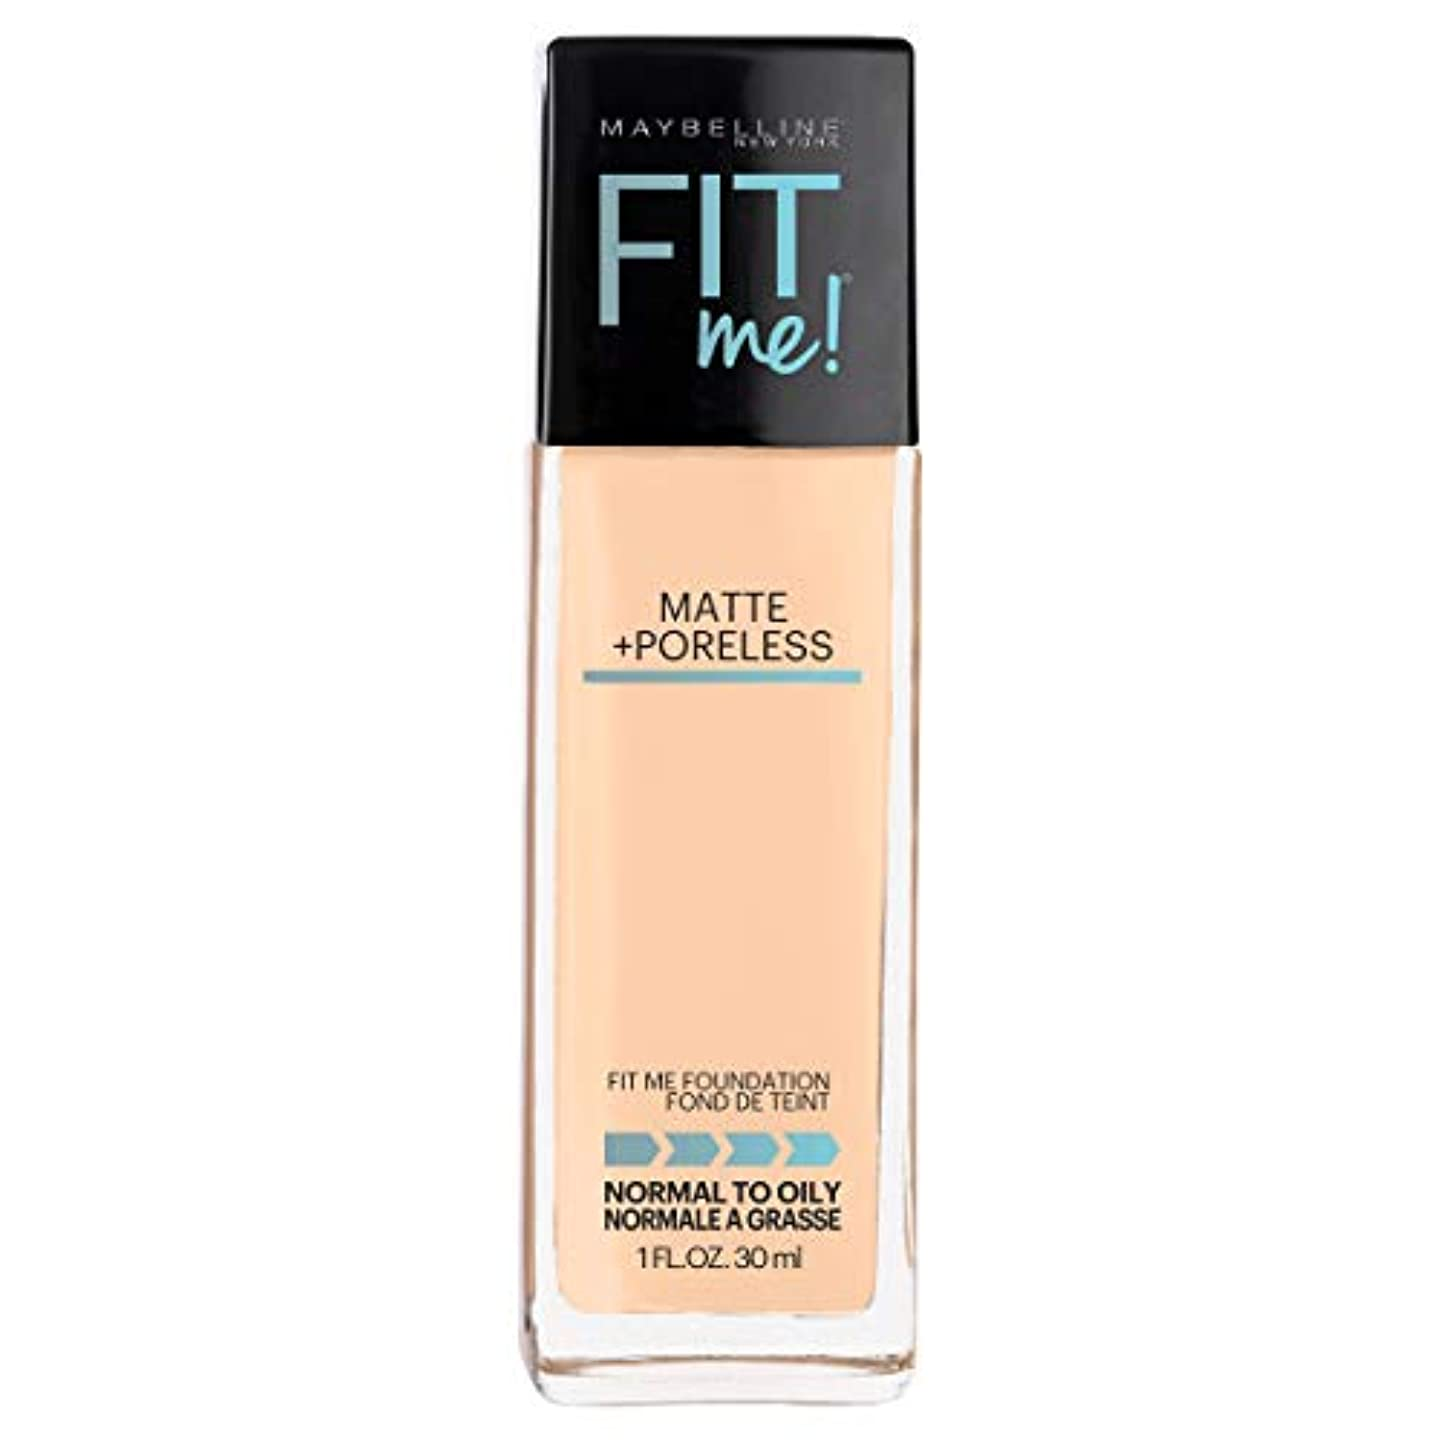 次ブラウズダイヤルMAYBELLINE Fit Me! Matte + Poreless Foundation - Warm Nude 128 (並行輸入品)